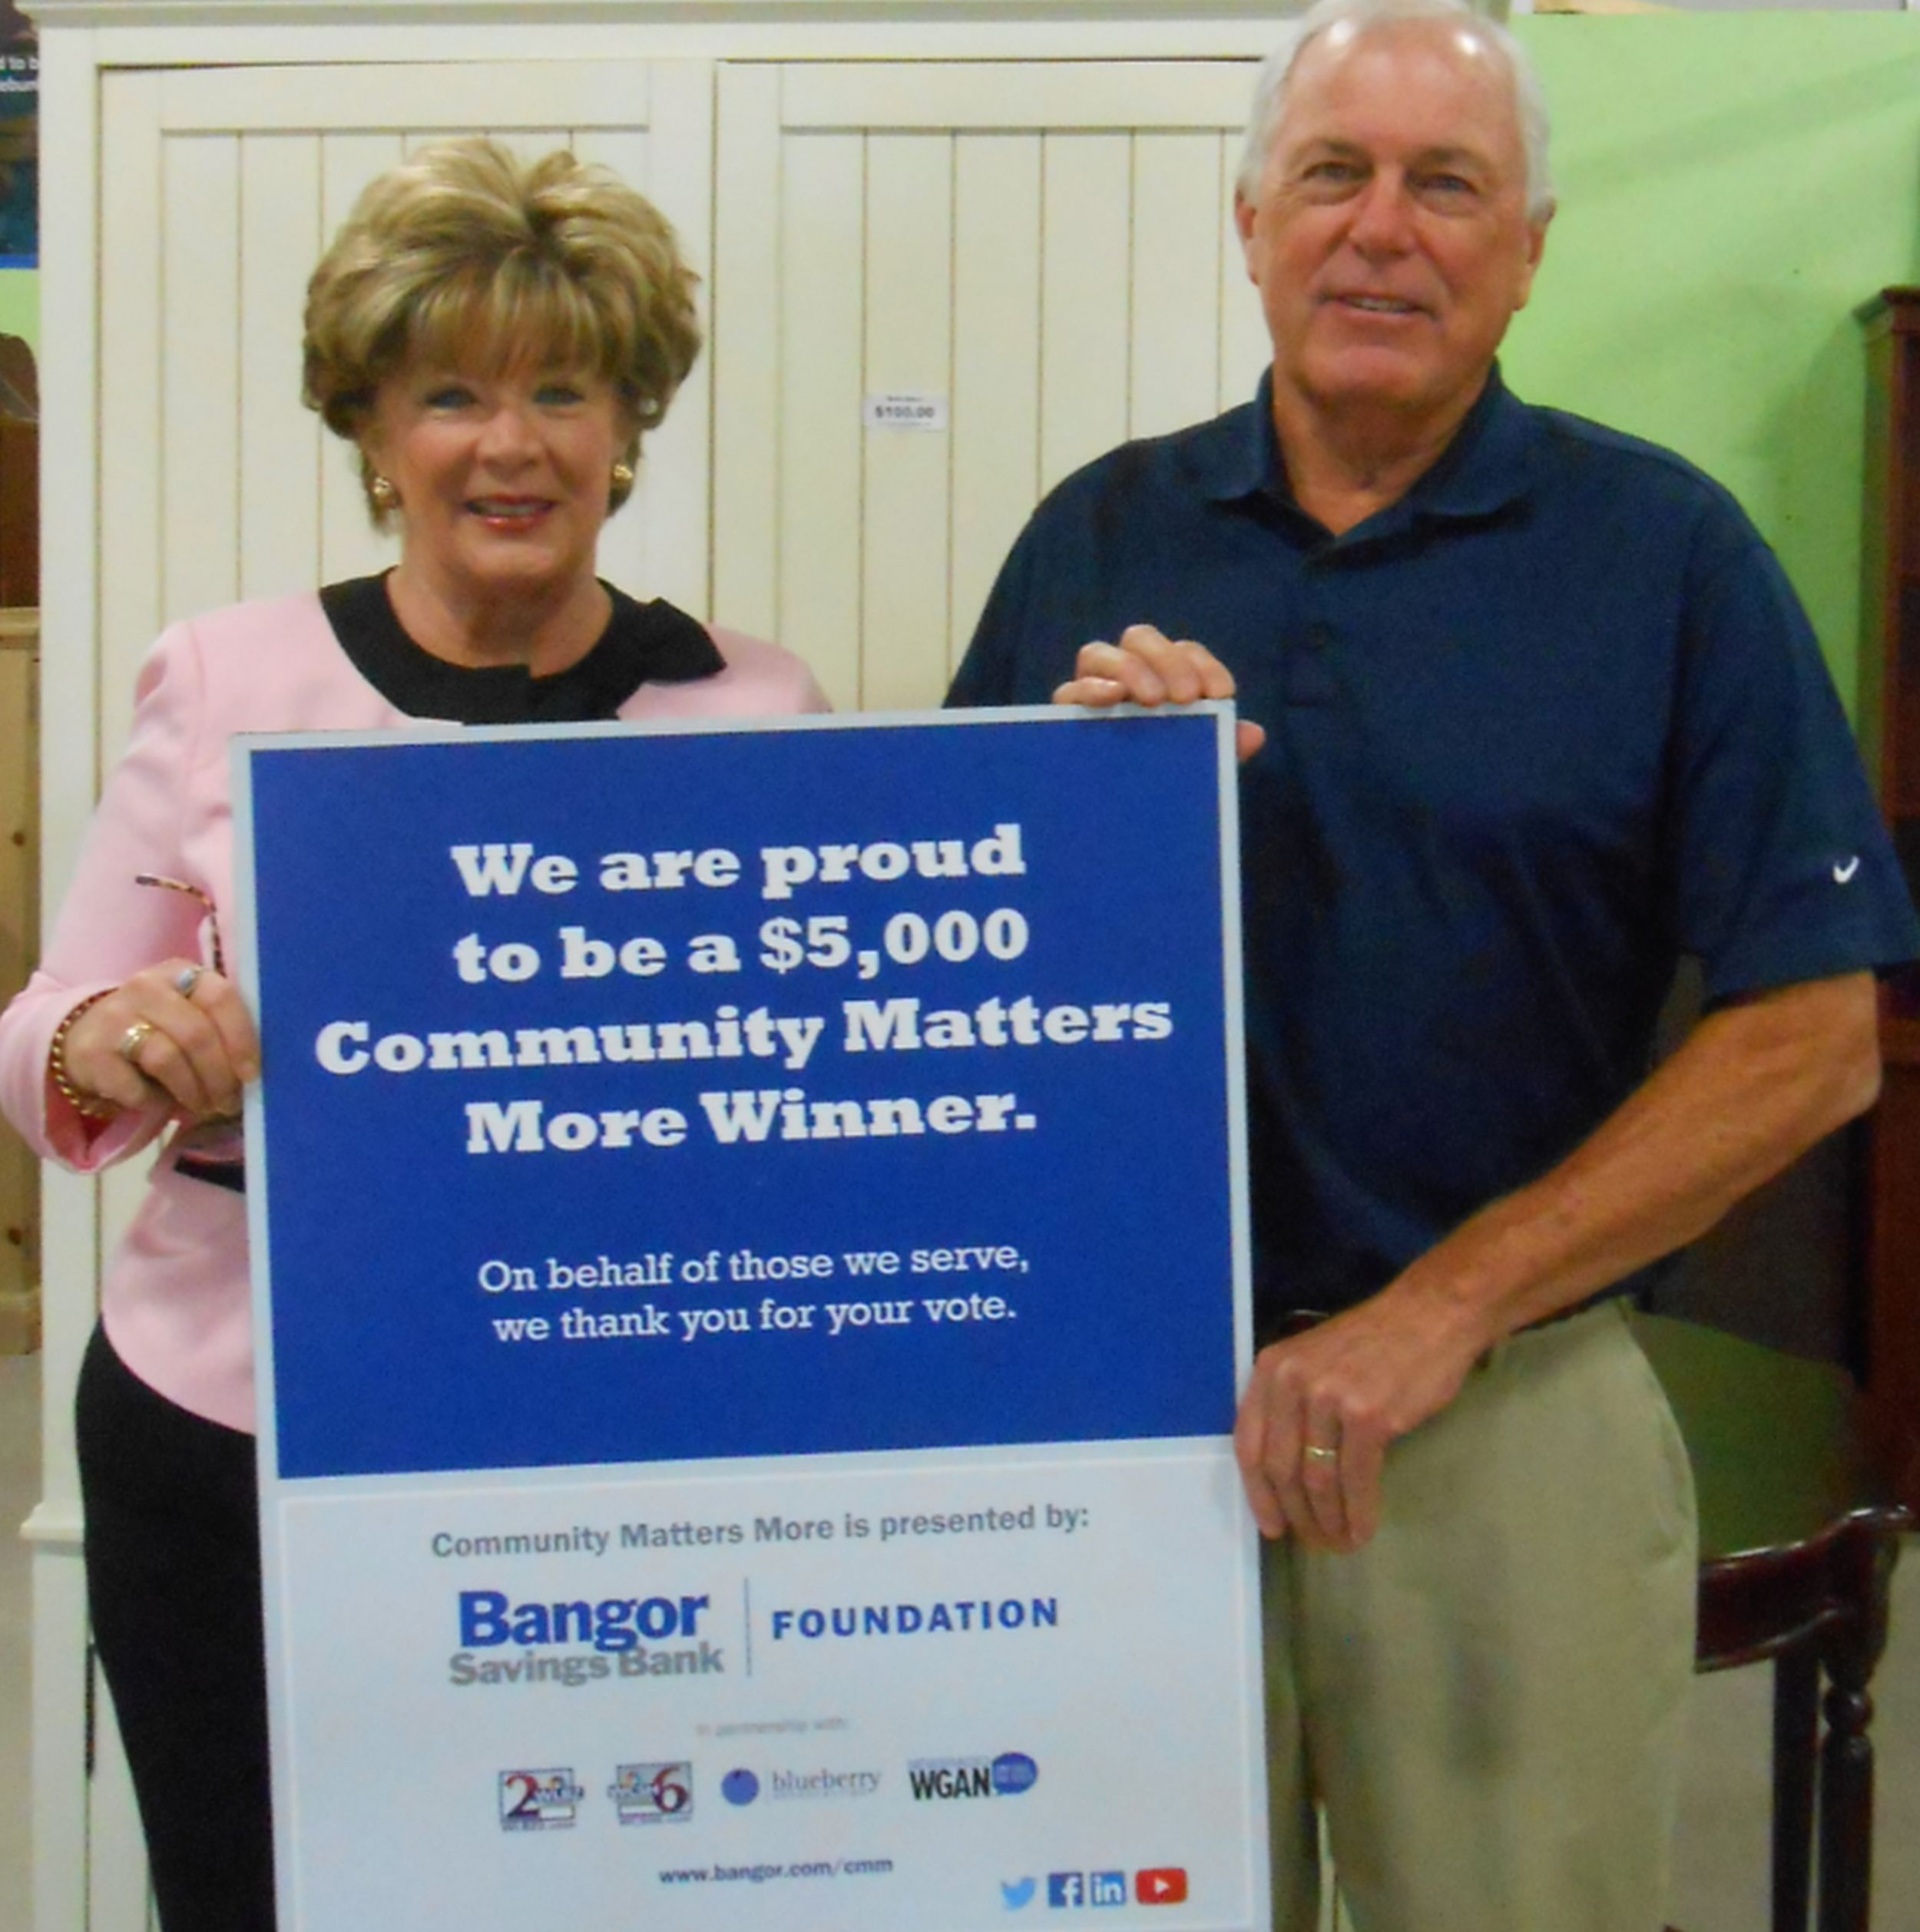 Barbara Conda, Branch Manager of Bangor Savings Bank in York, left, presents a check for $5,000 to Doug Fraser, President of the Board of Directors of Habitat for Humanity York County. SUBMITTED PHOTO